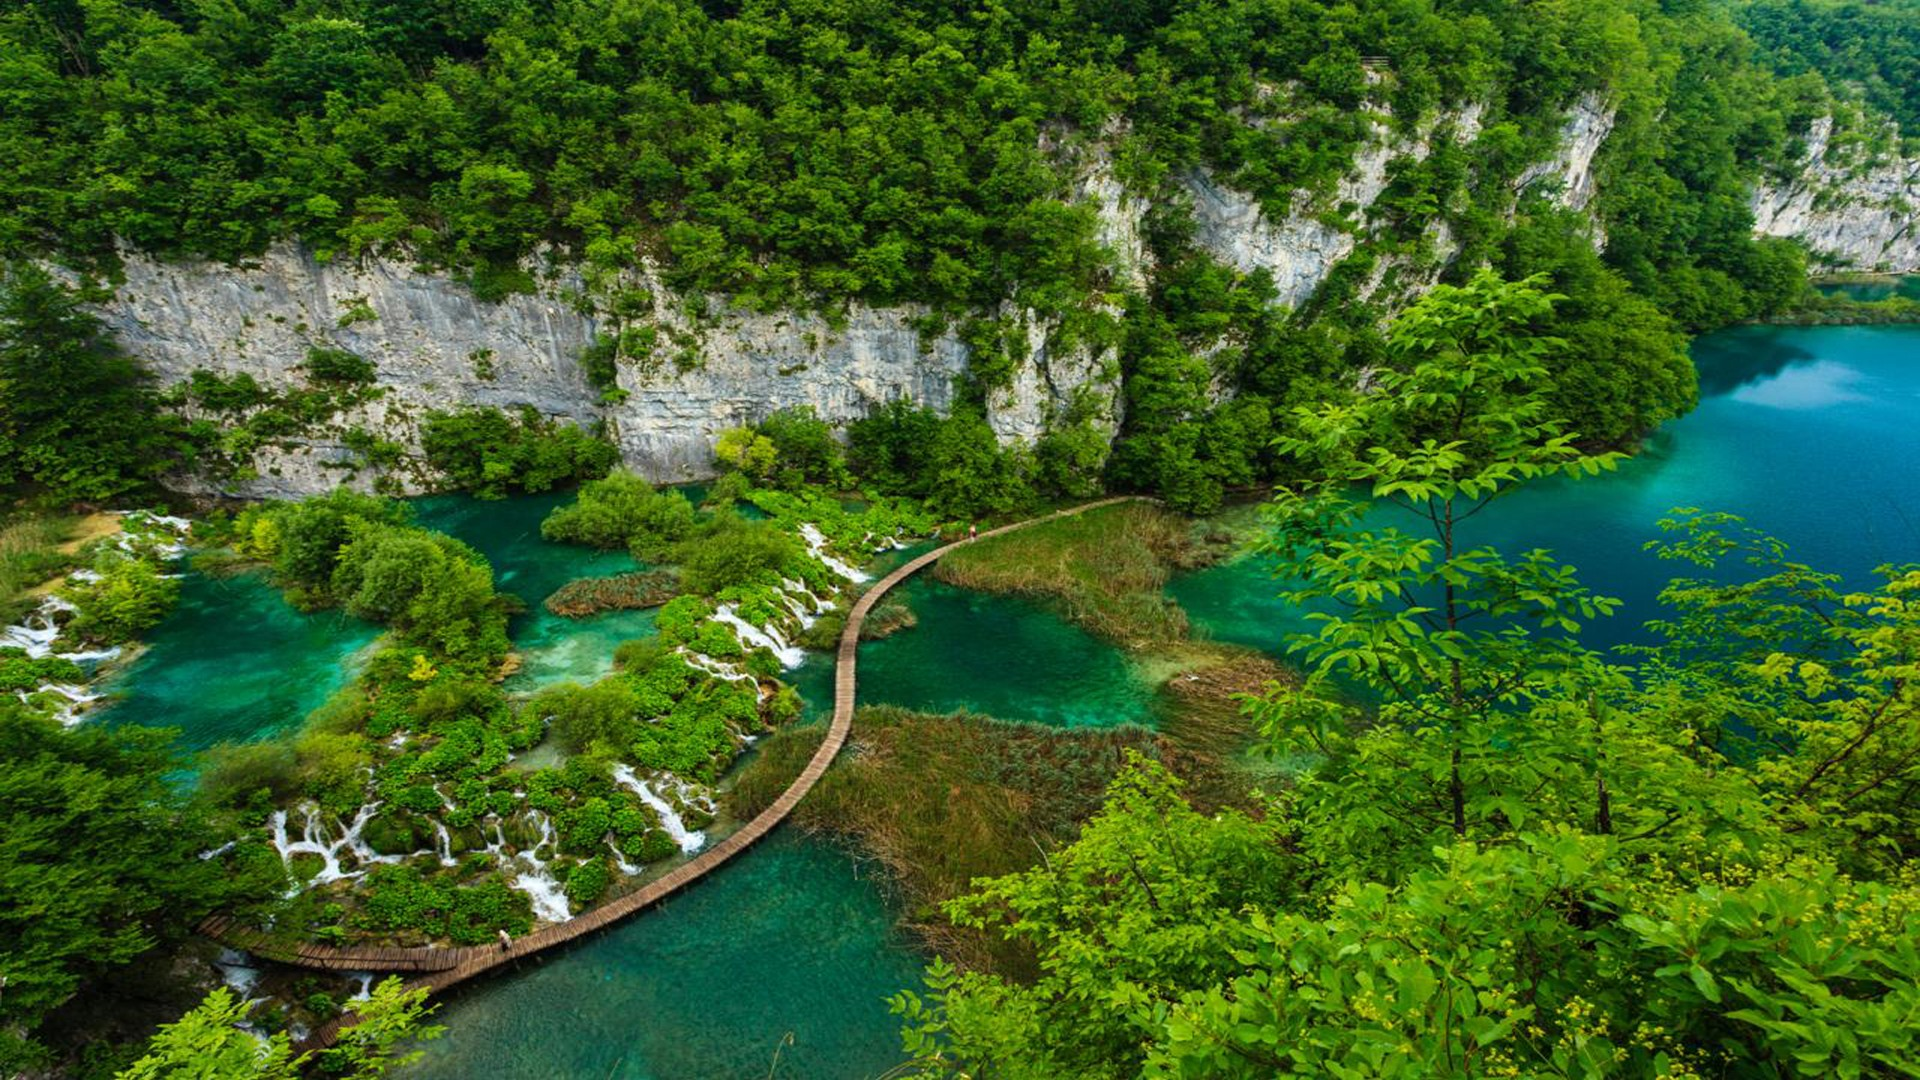 Plitvice lake Wallpapers and Background Images   stmednet 1920x1080